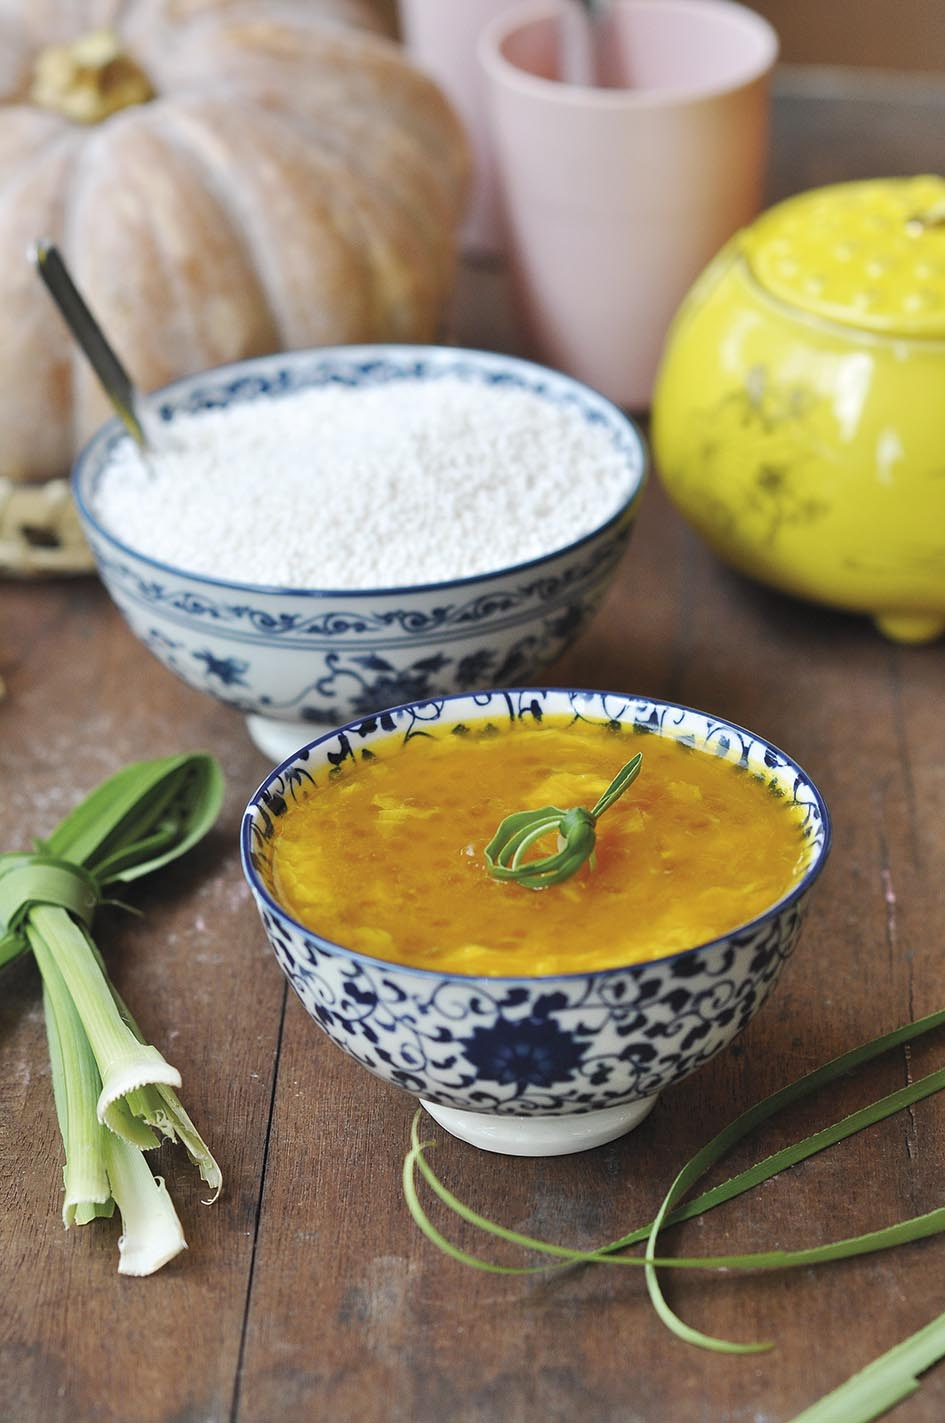 Pumpkin Sago Dessert with Egg